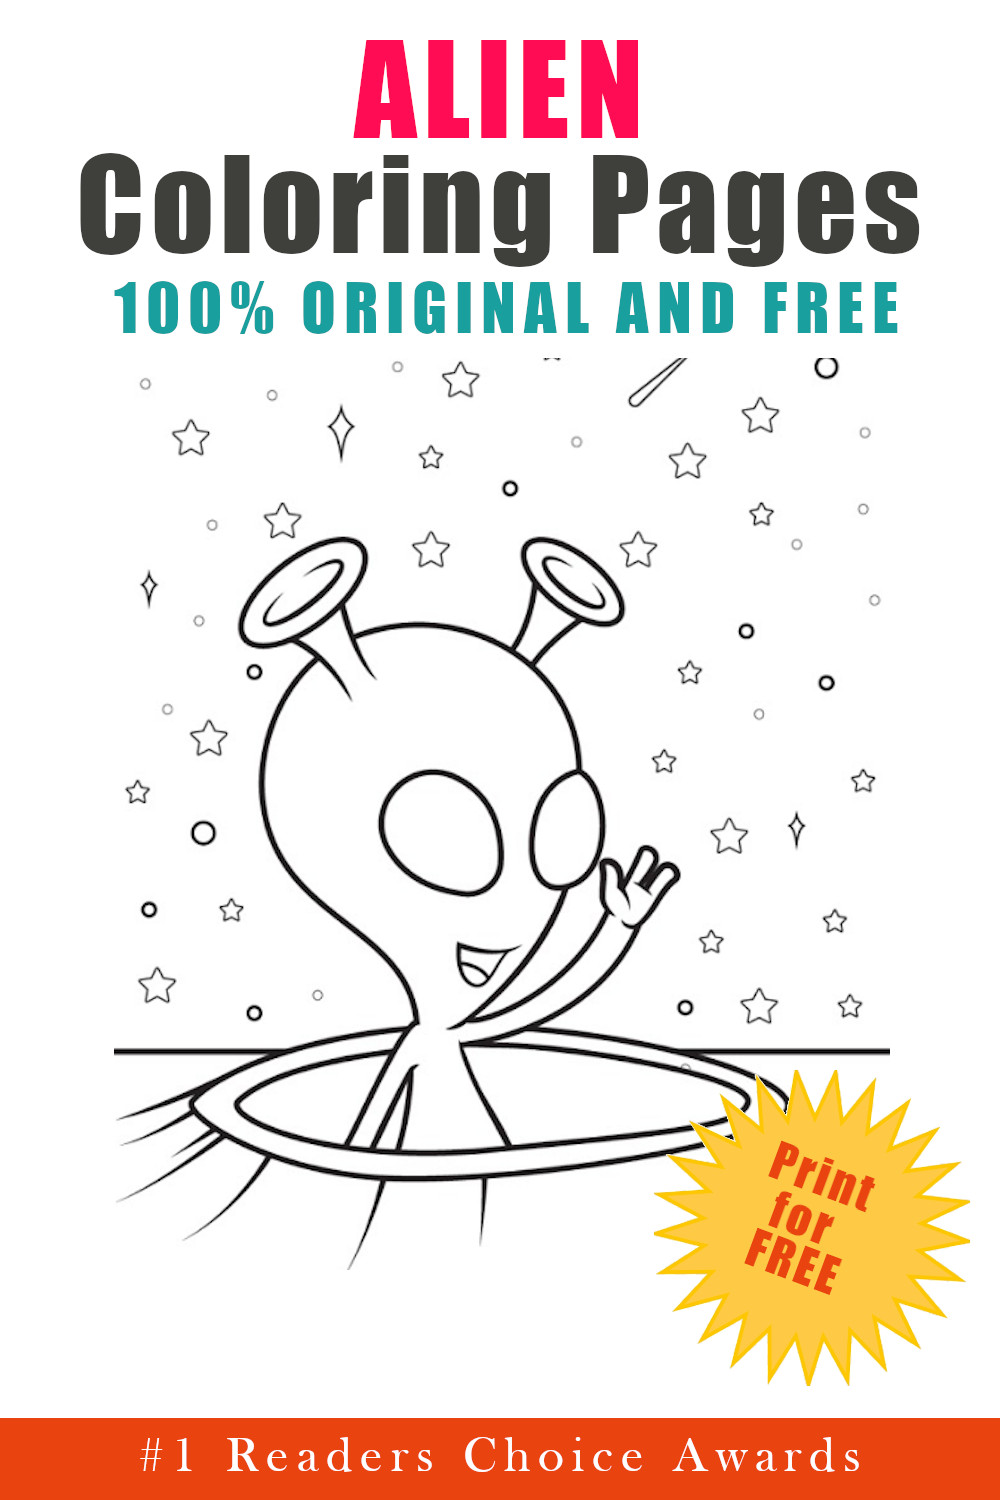 original and free alien coloring pages